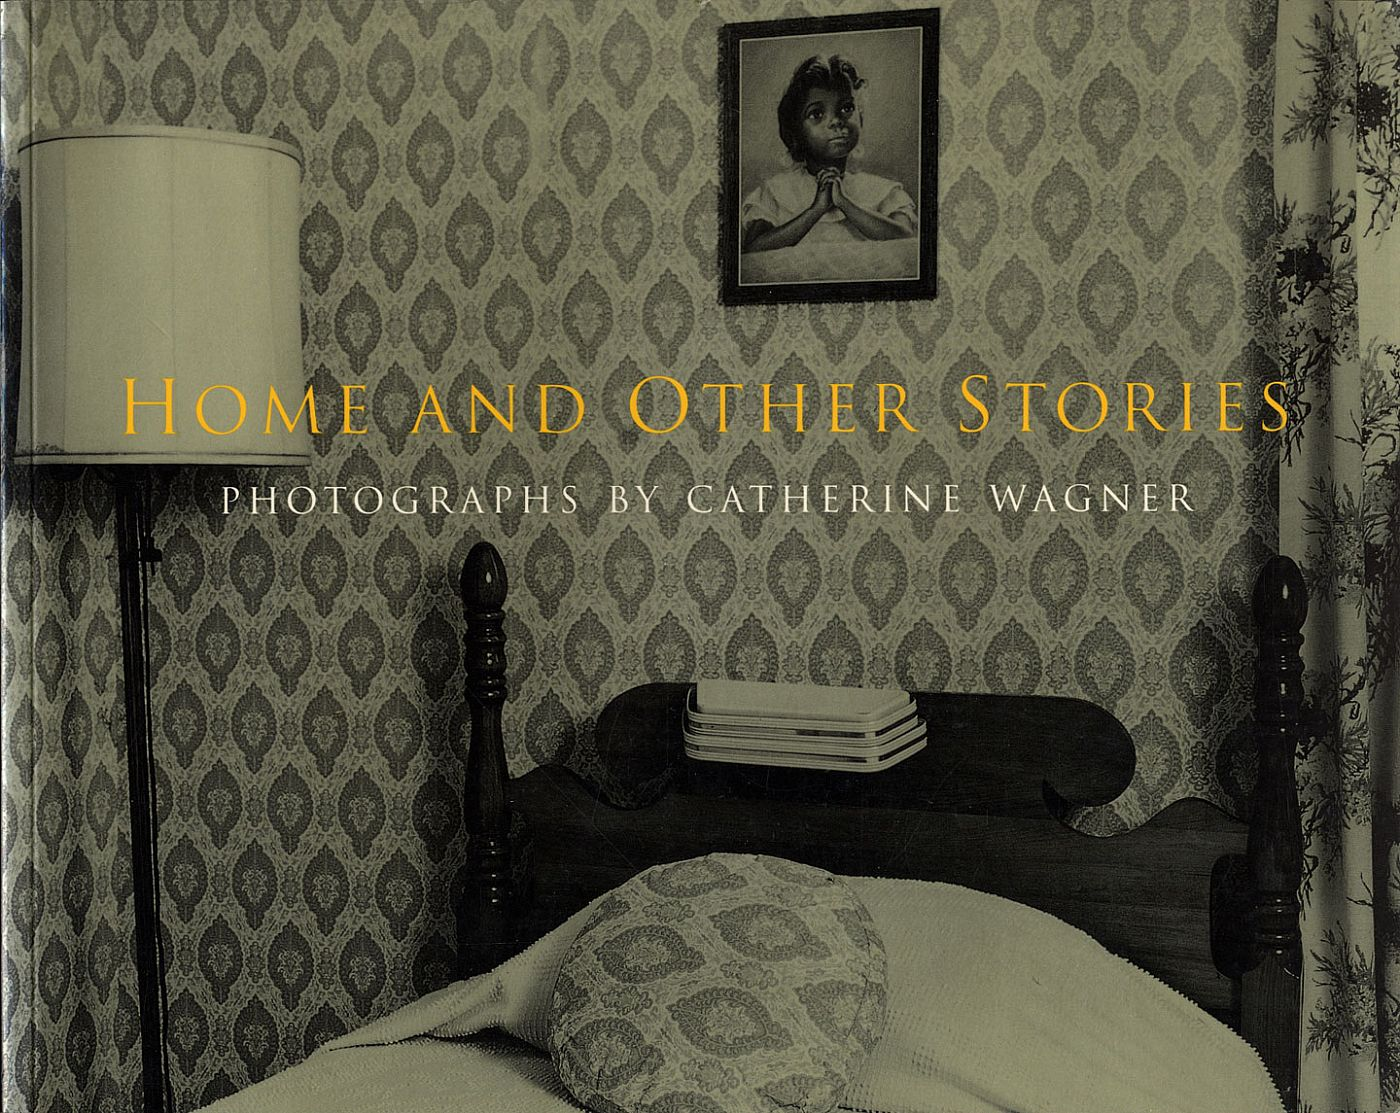 Home and Other Stories: Photographs by Catherine Wagner (Soft Cover First Edition)